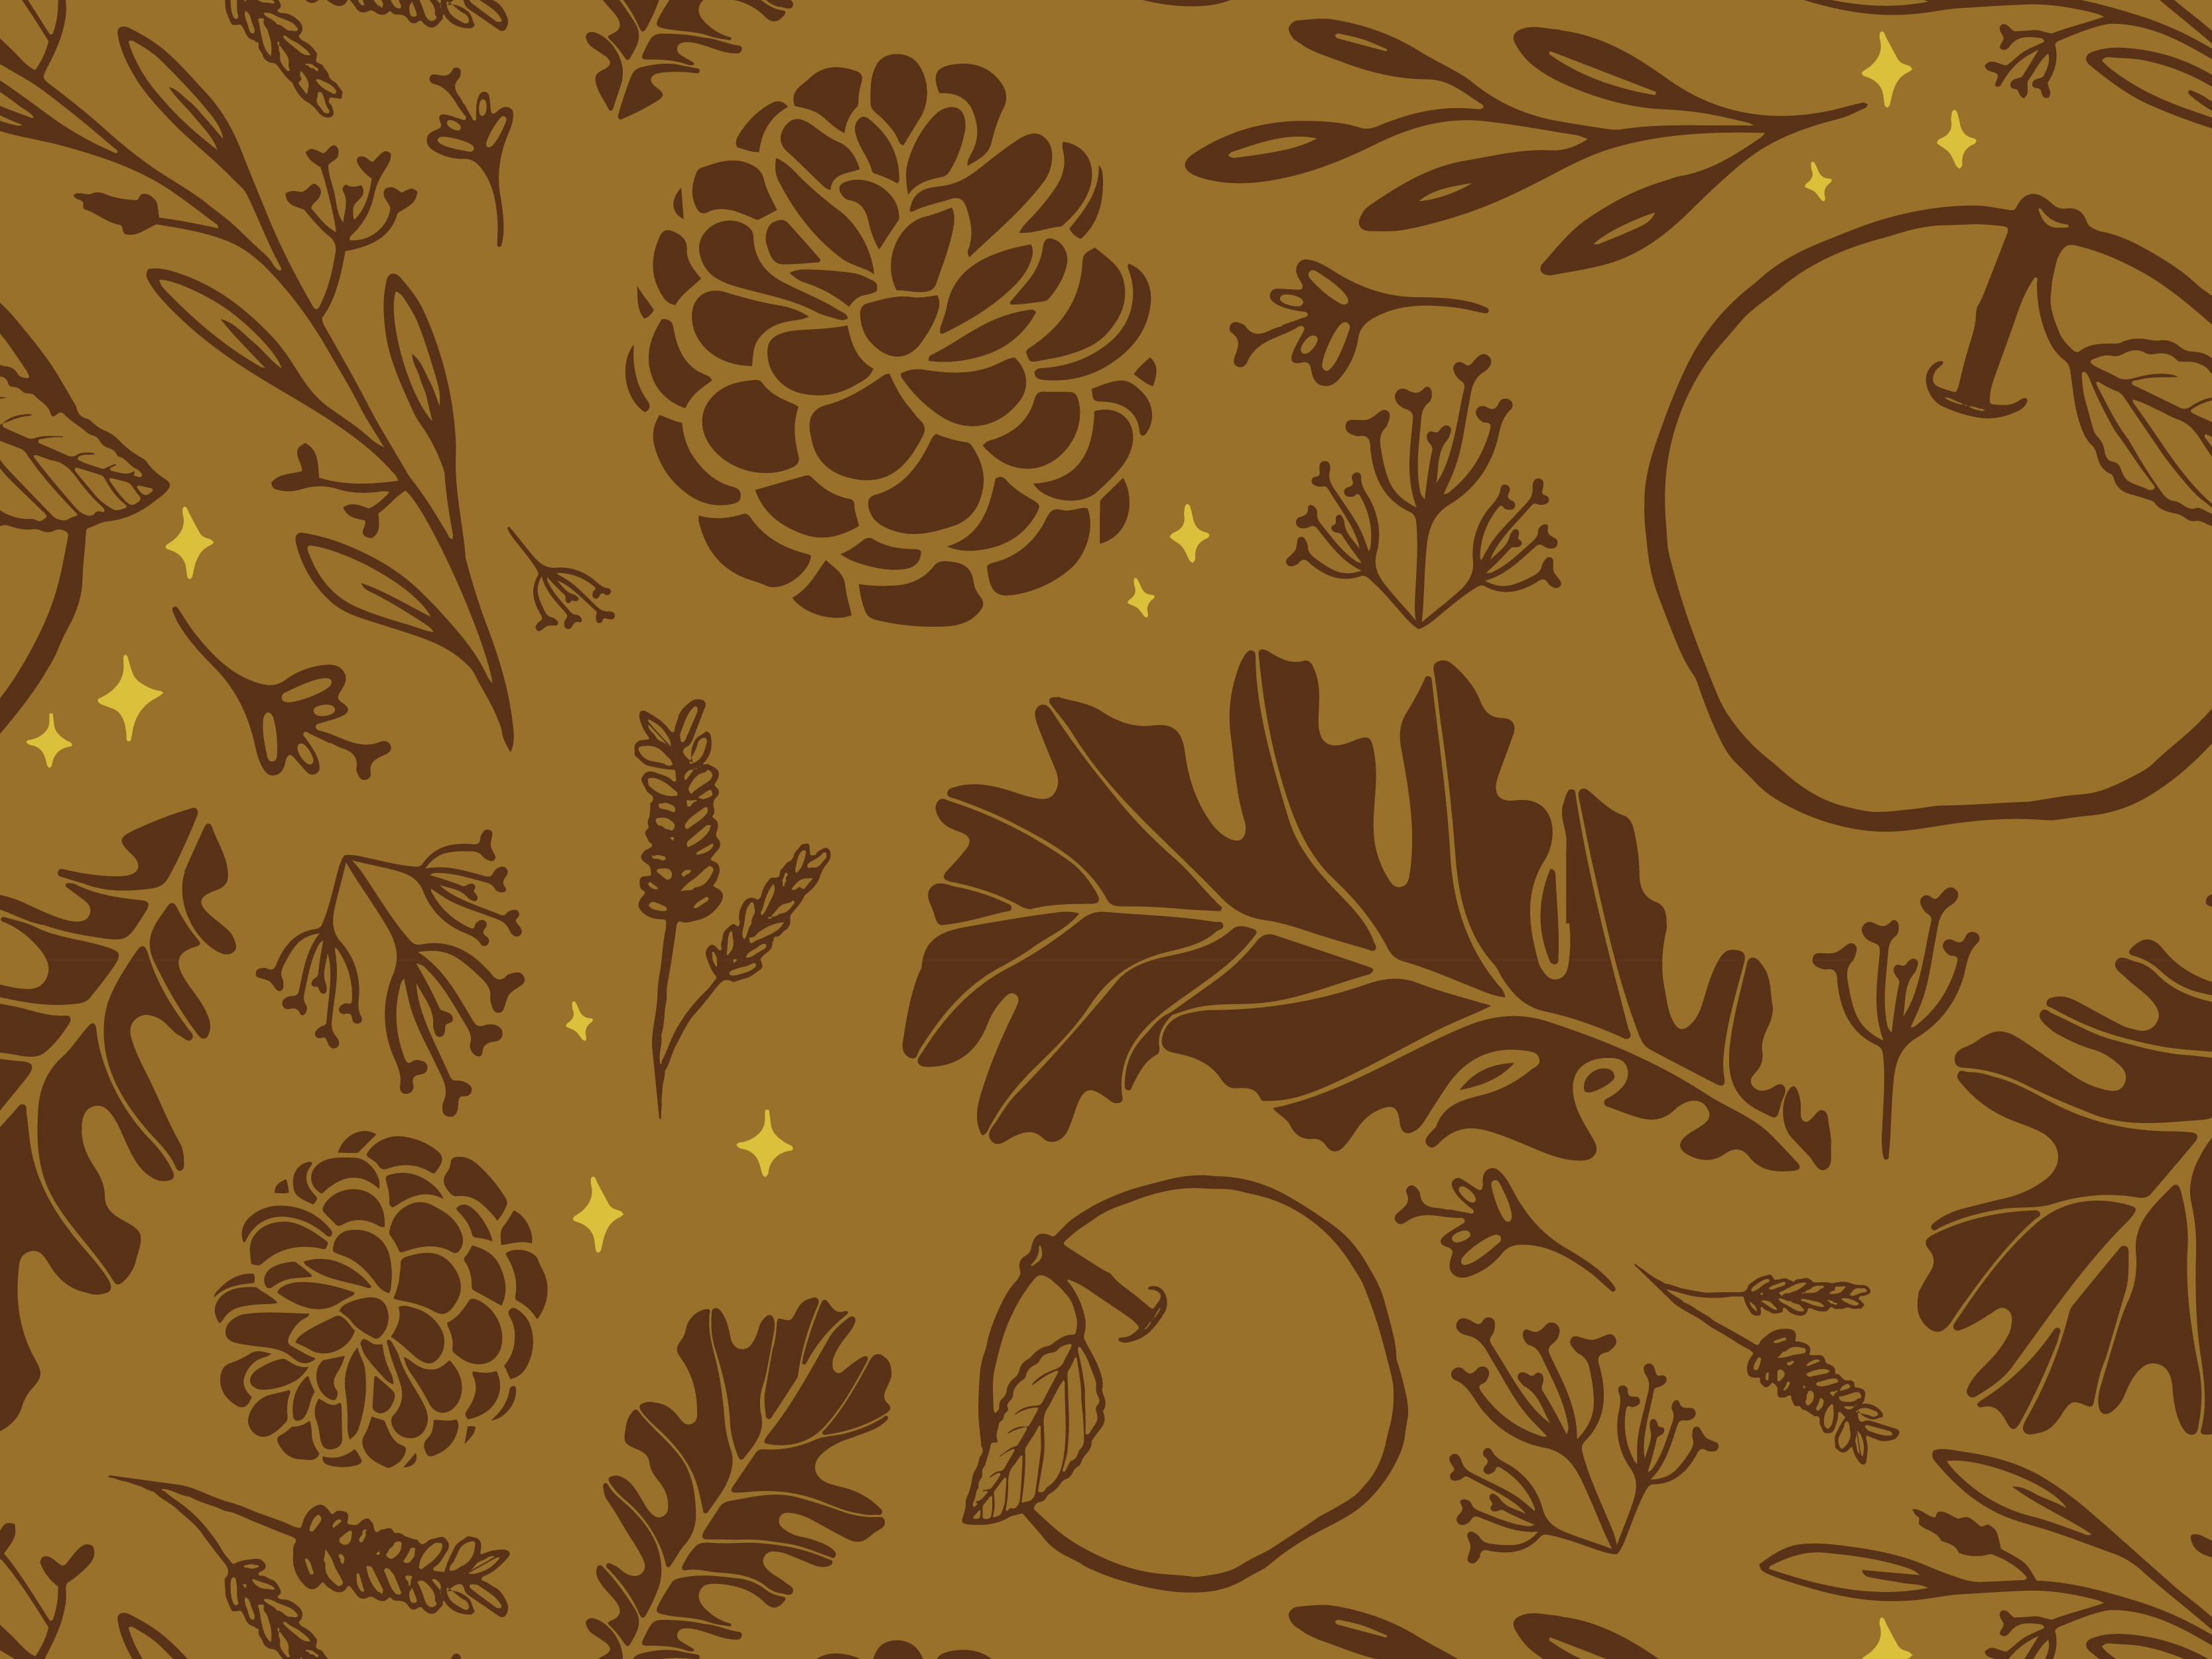 An illustrated autumn pattern created for Brewpoint Coffee's fall blend – The Arborist.